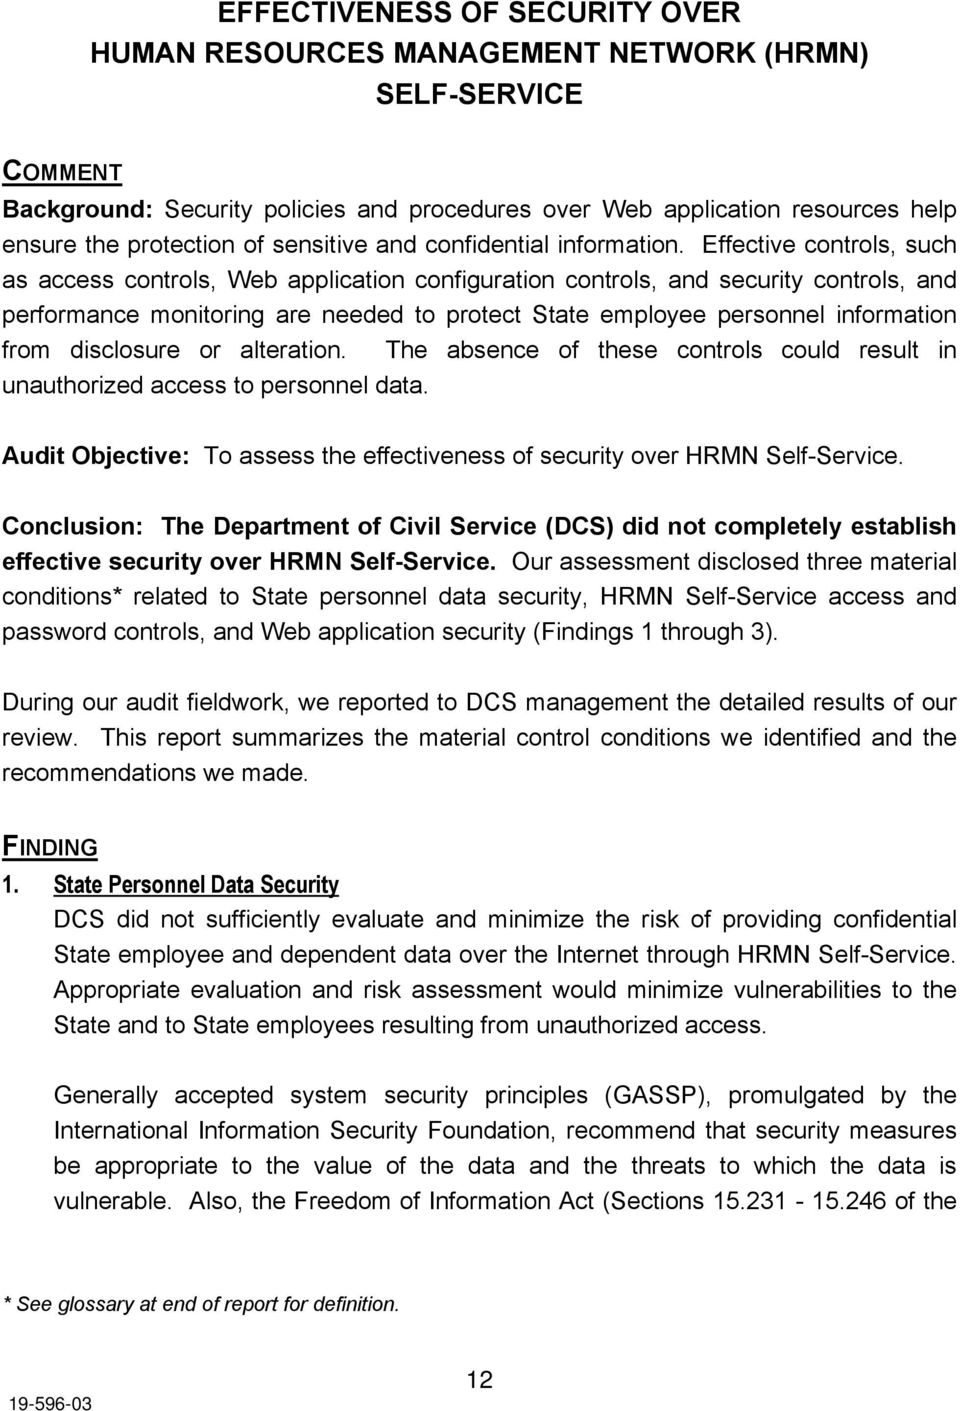 Effective controls, such as access controls, Web application configuration controls, and security controls, and performance monitoring are needed to protect State employee personnel information from